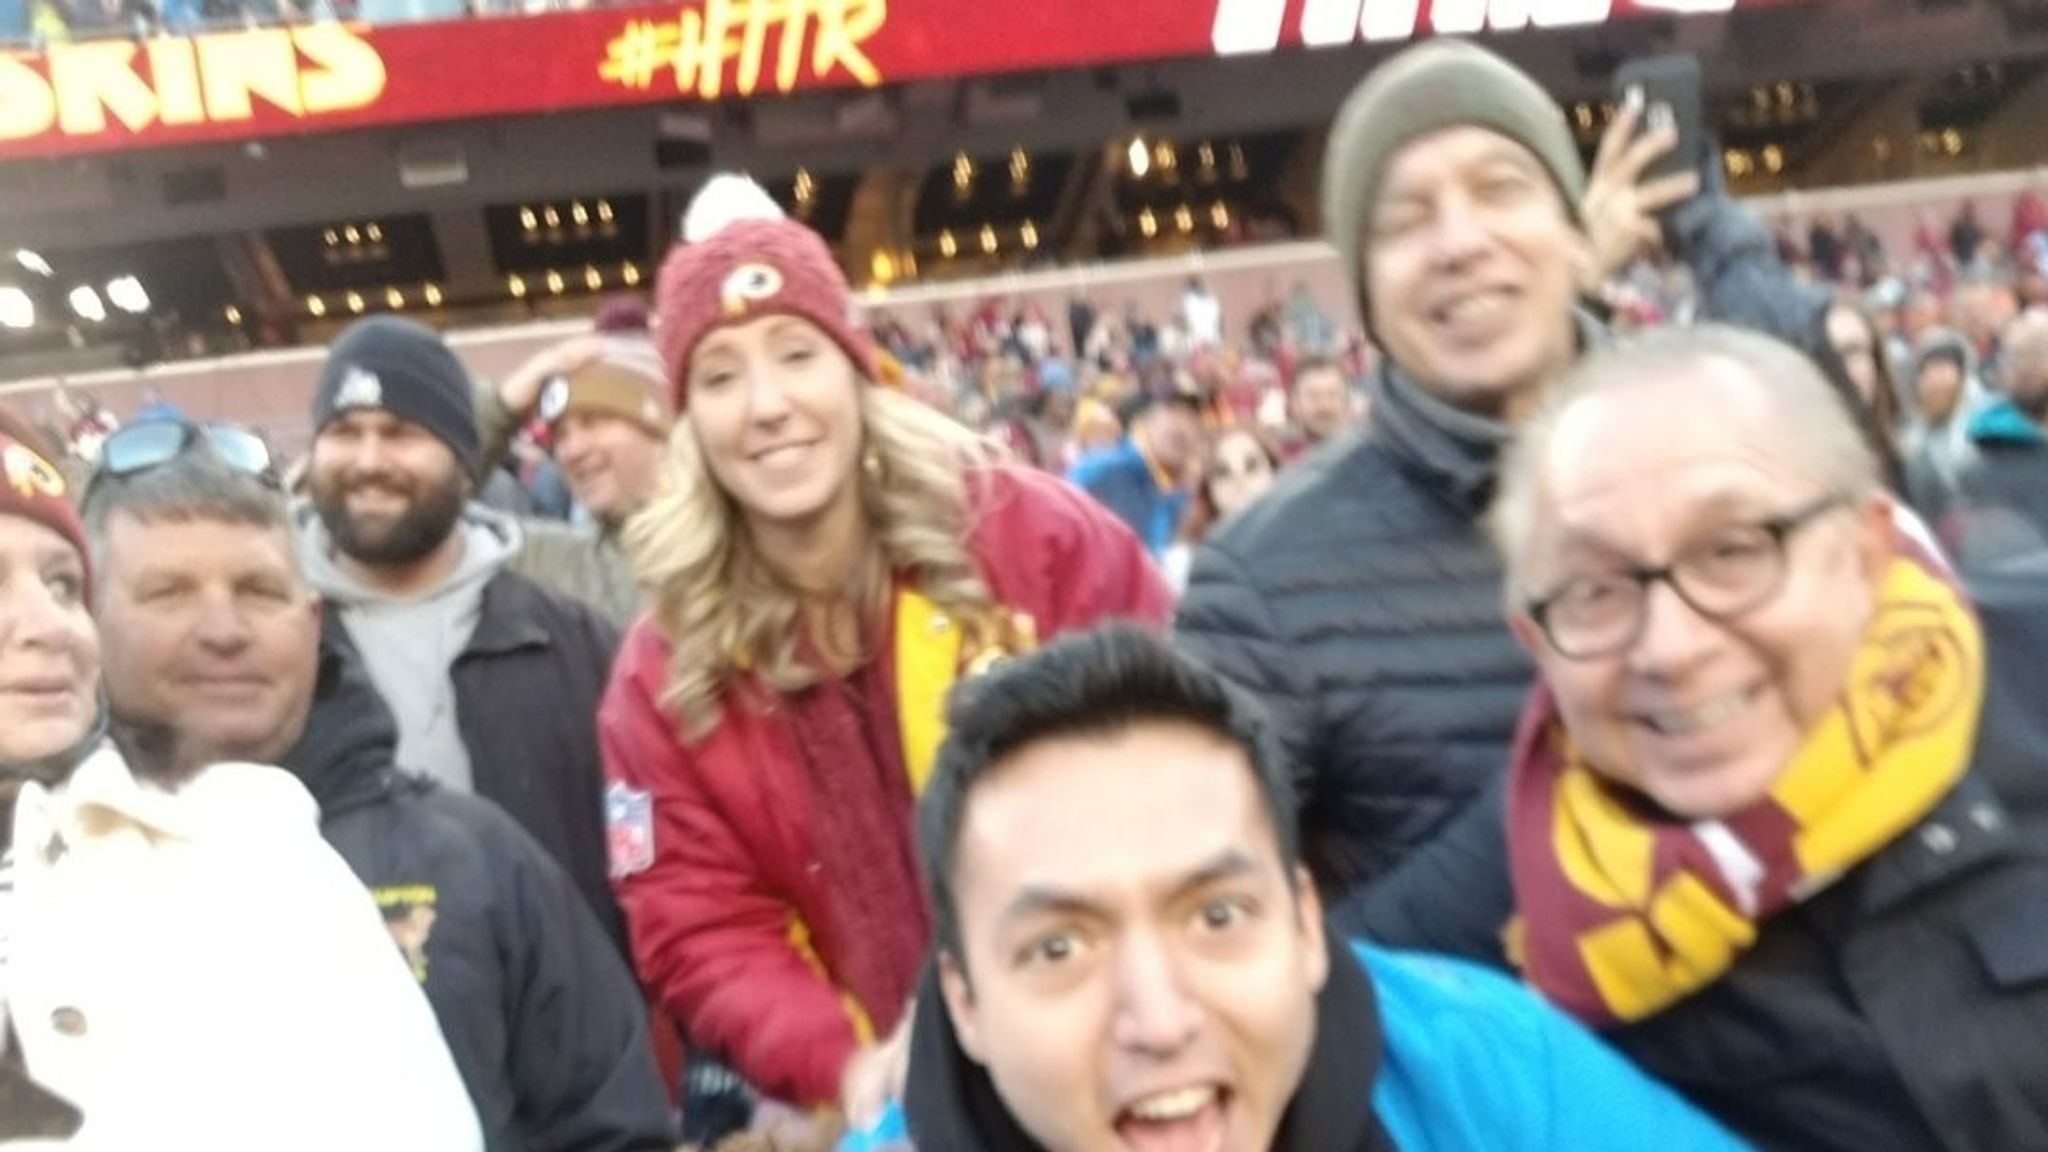 Dwayne Haskins: Redskins quarterback goes AWOL for fan selfie - but the game's not over